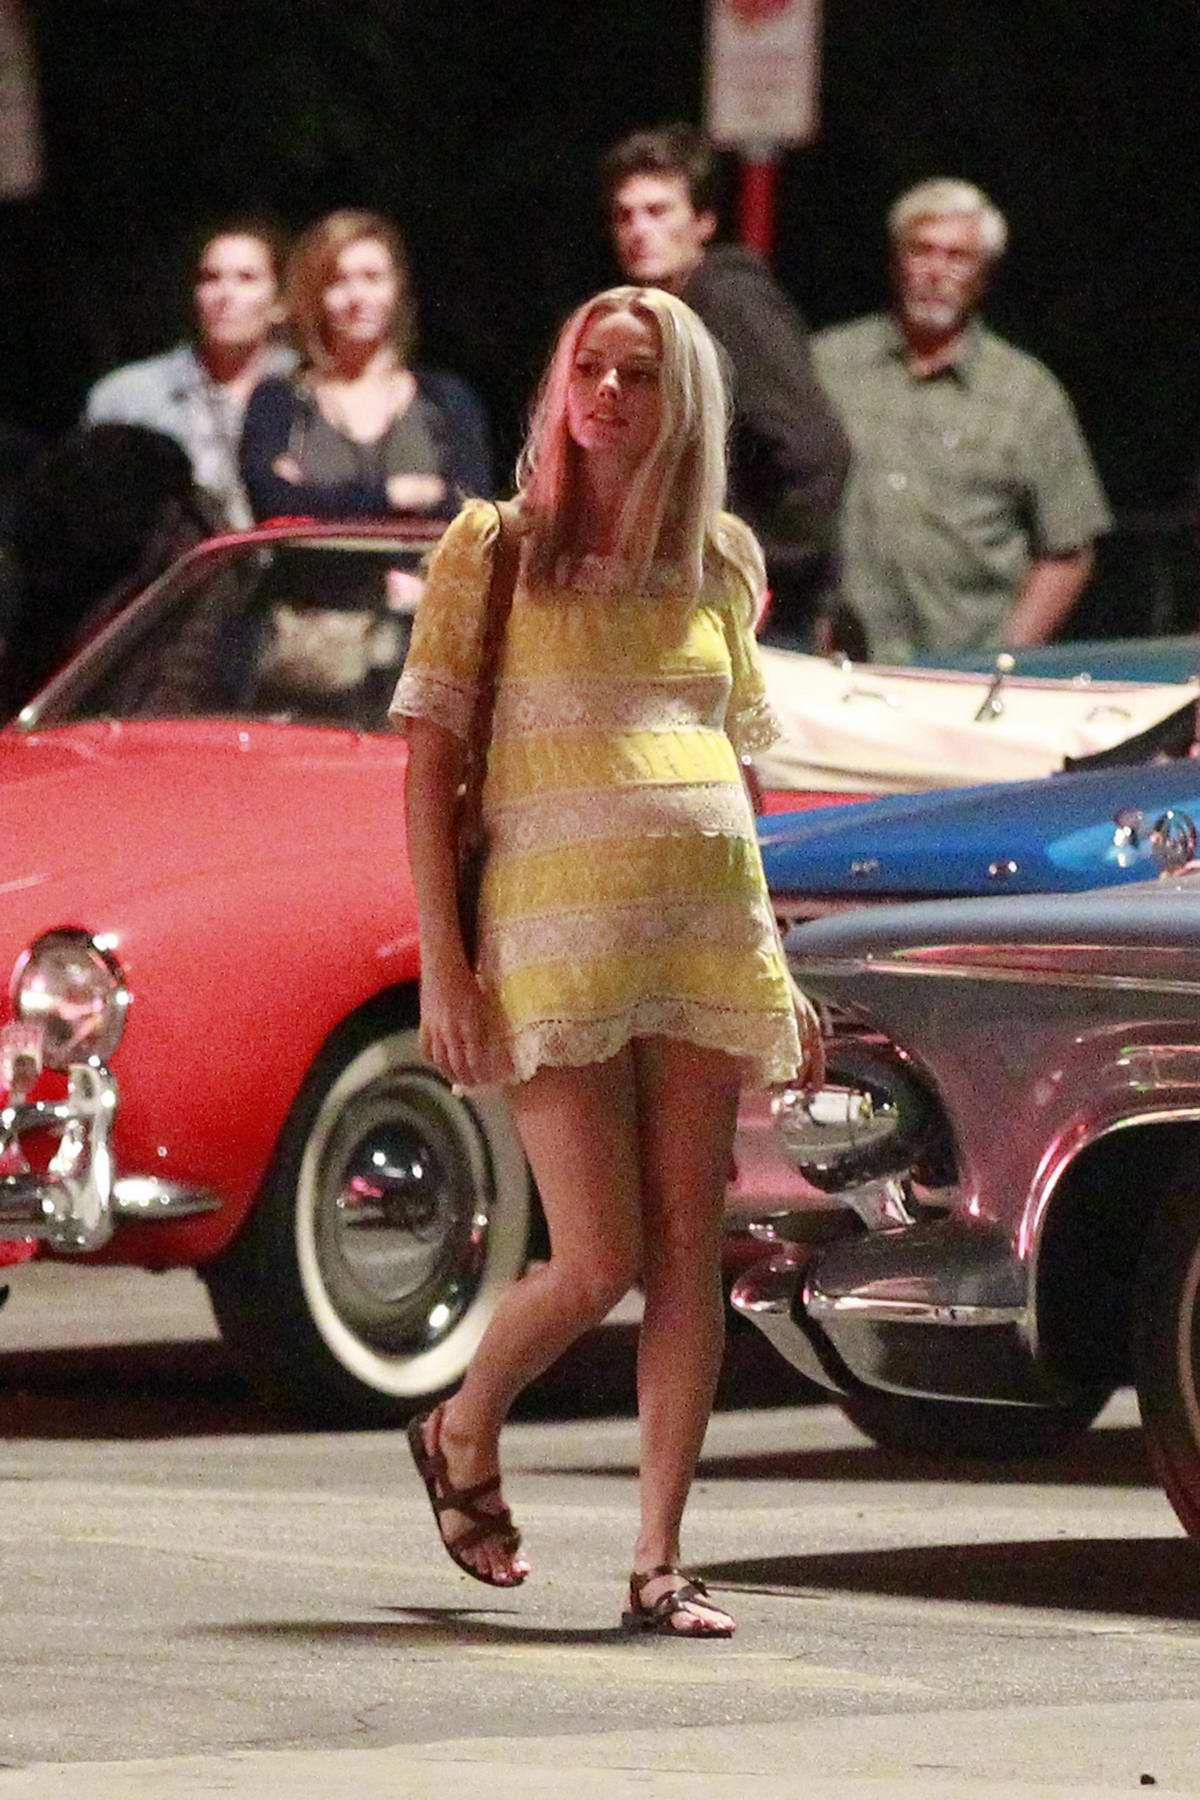 Margot Robbie seen with a baby bump as she portrays Sharon Tate while filming 'Once Upon A Time In Hollywood' in Los Angeles